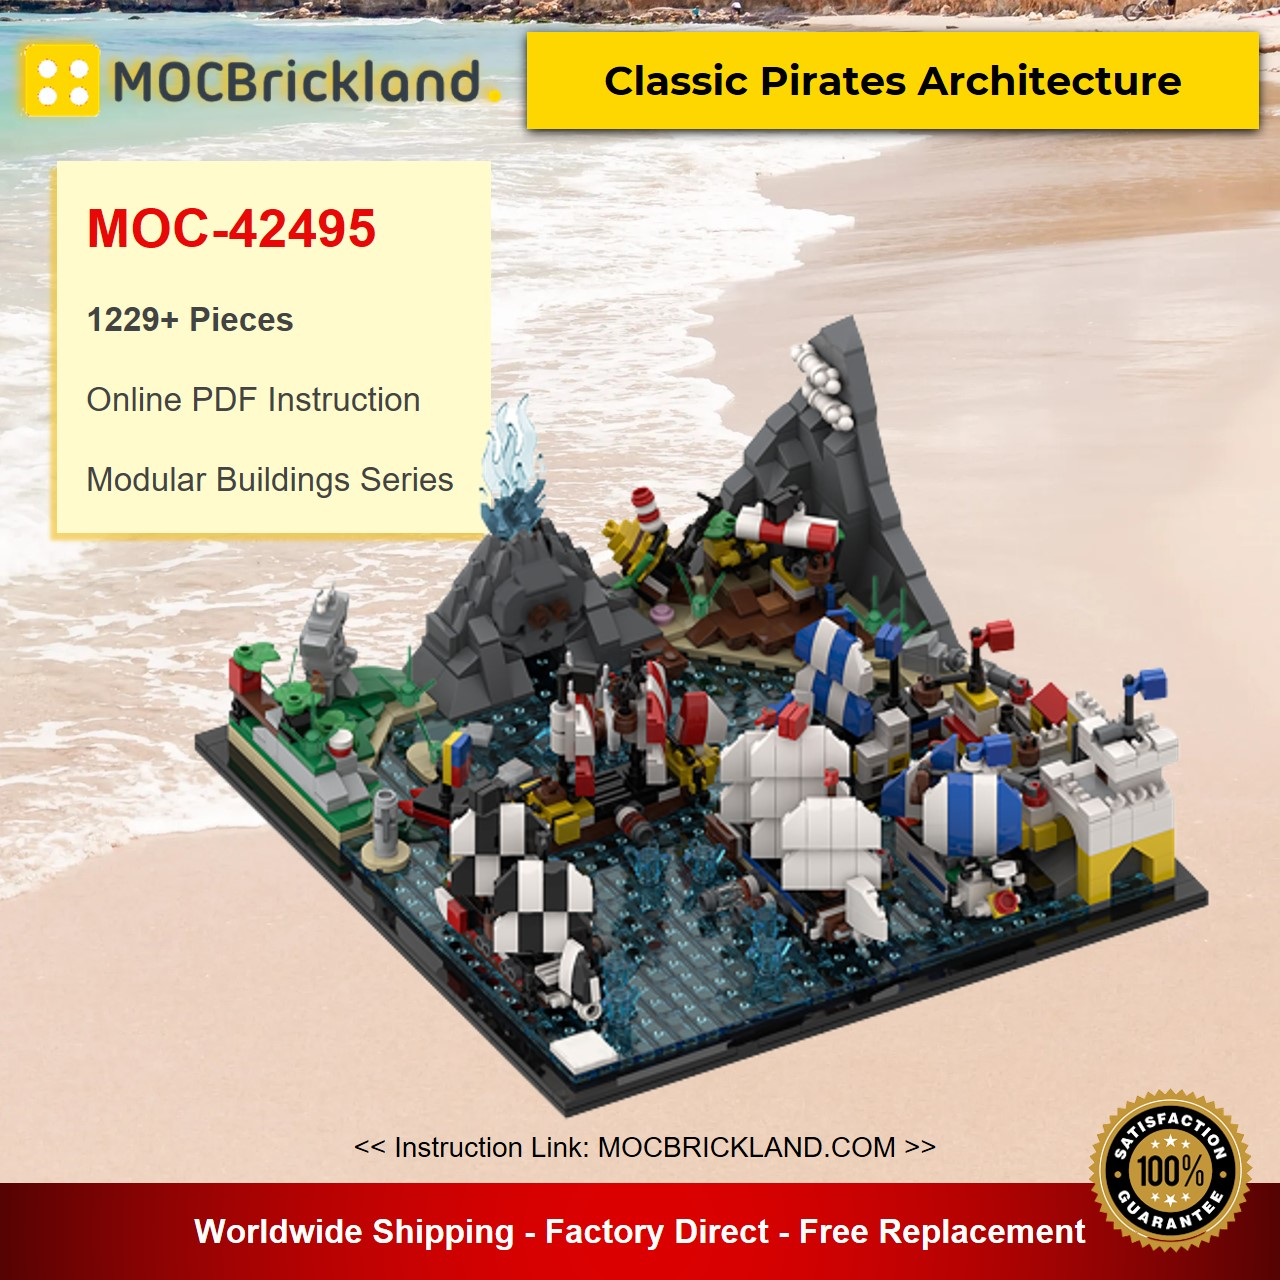 MOC-42495 Modular Buildings Classic Pirates Architecture Designed By MOMAtteo79 With 1229 Pieces